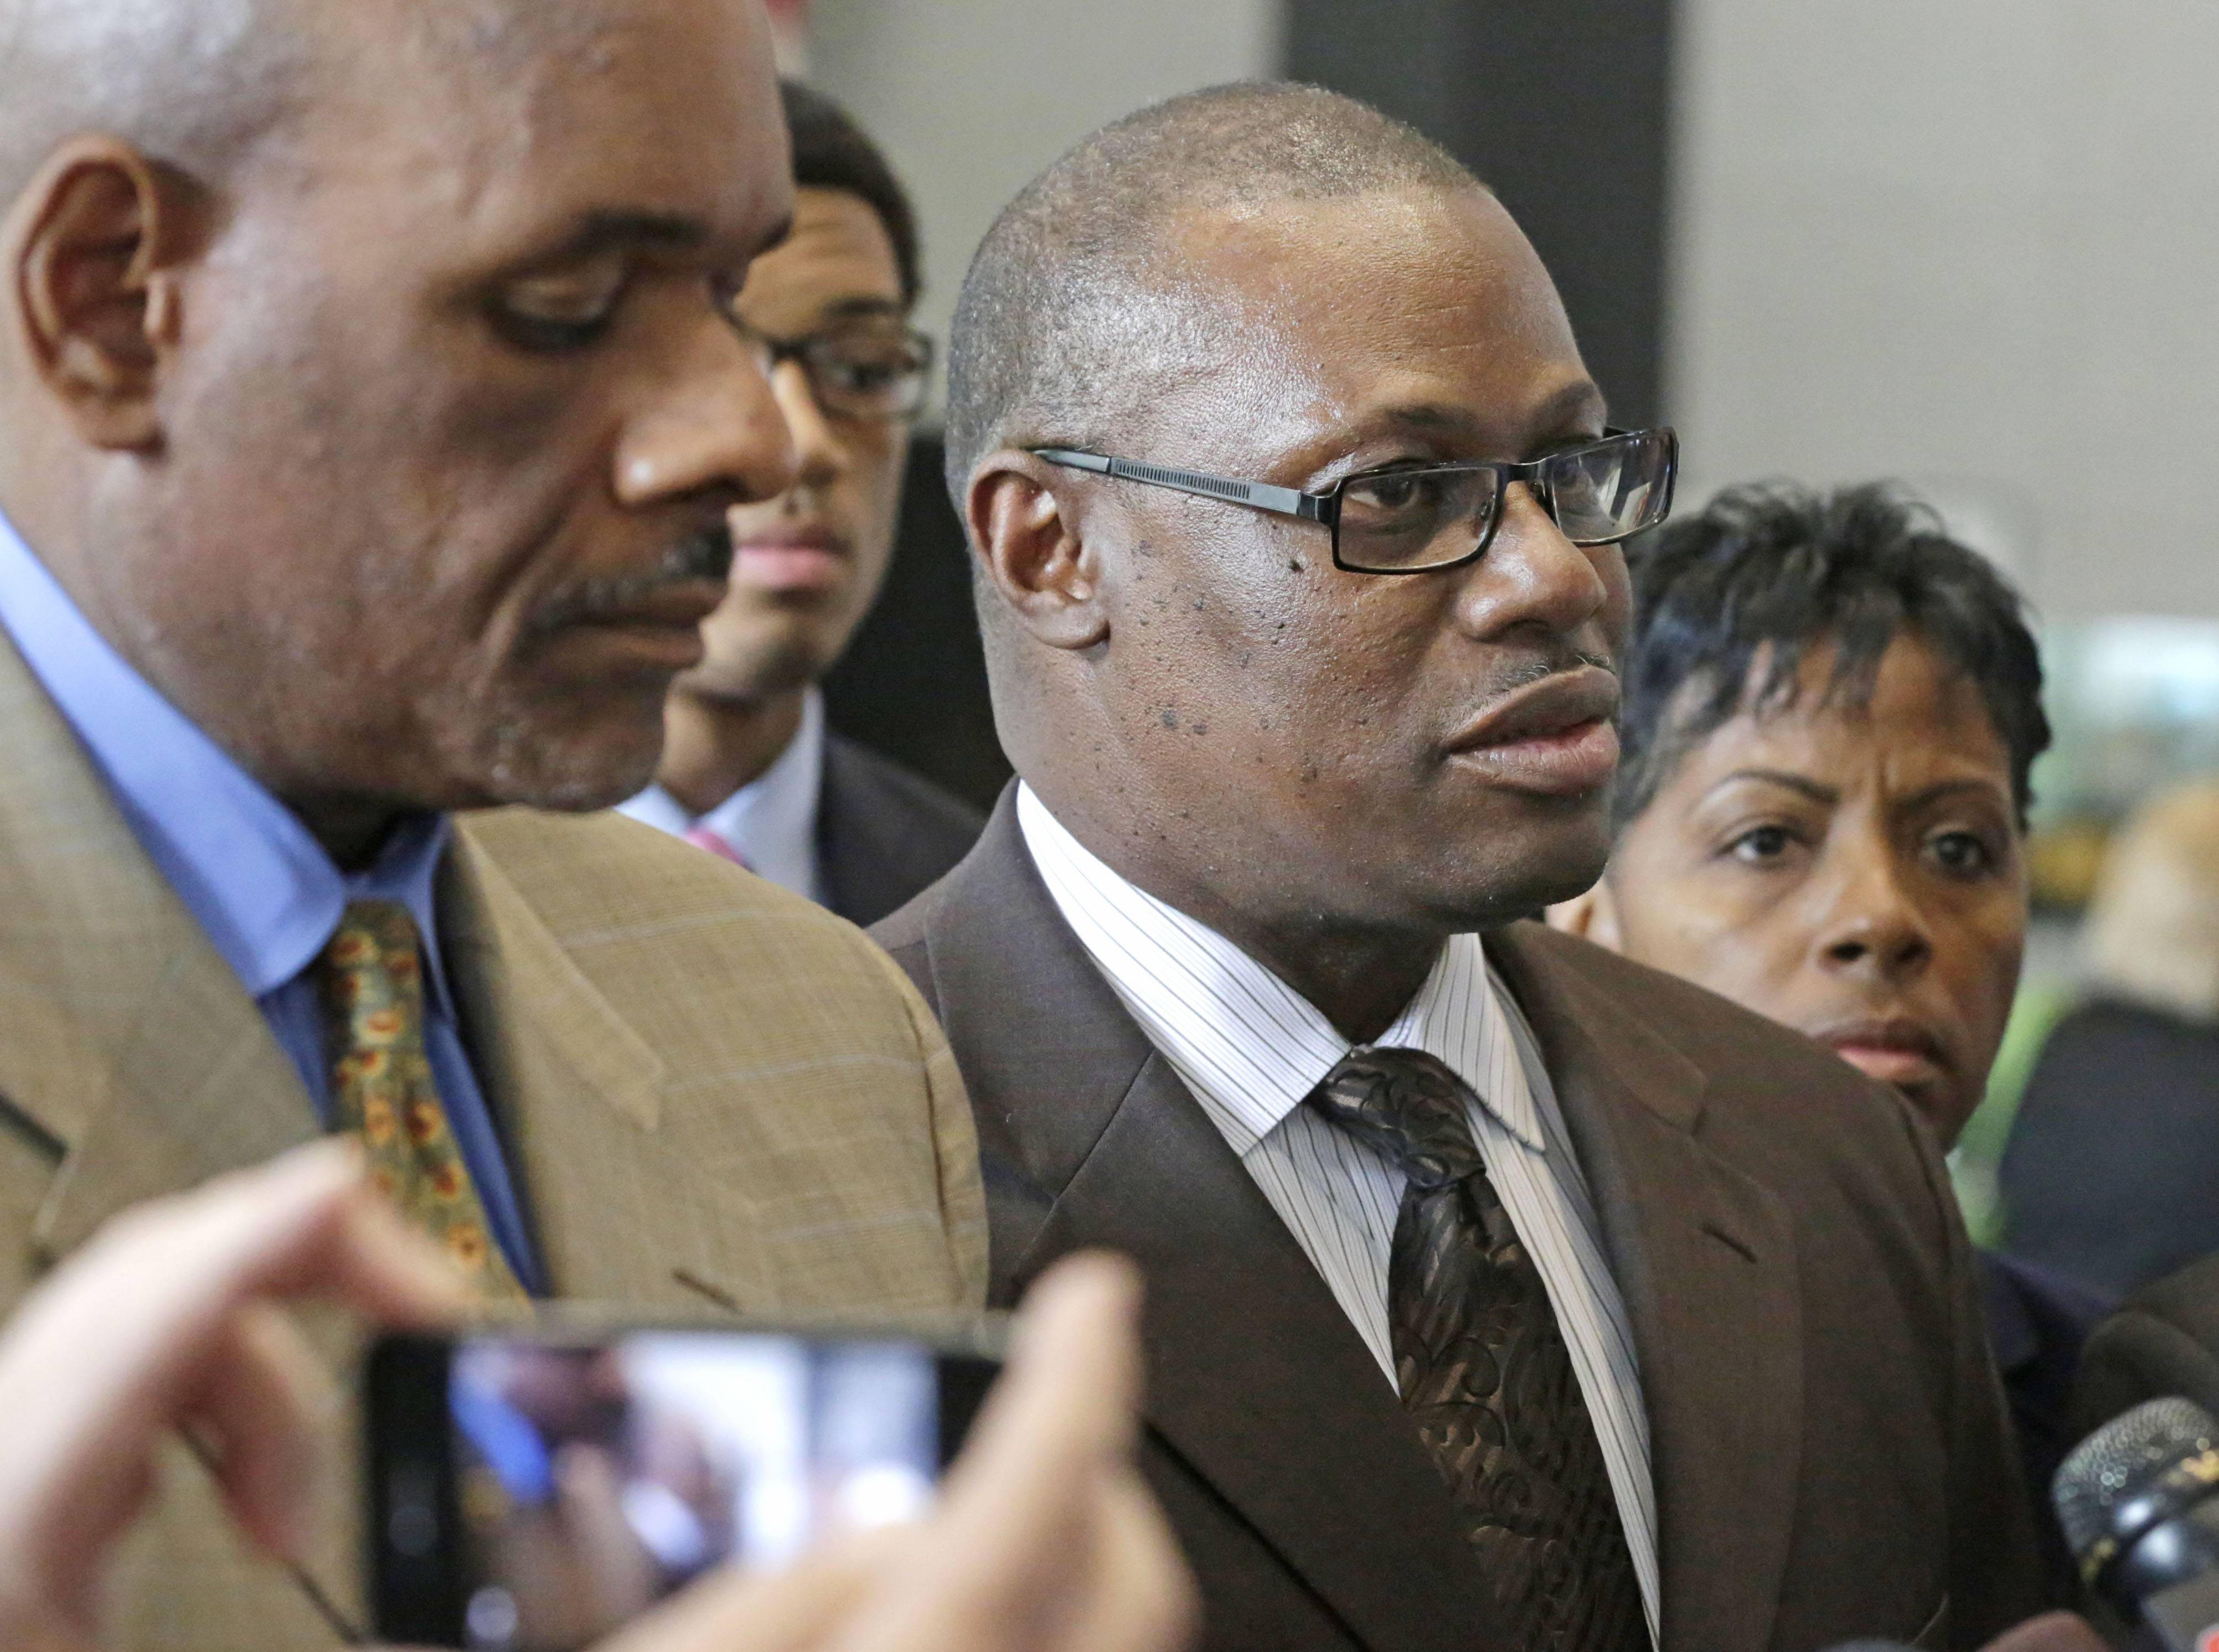 State Rep. Derrick Smith, center, speaks to reporters Tuesday at the federal building in Chicago.